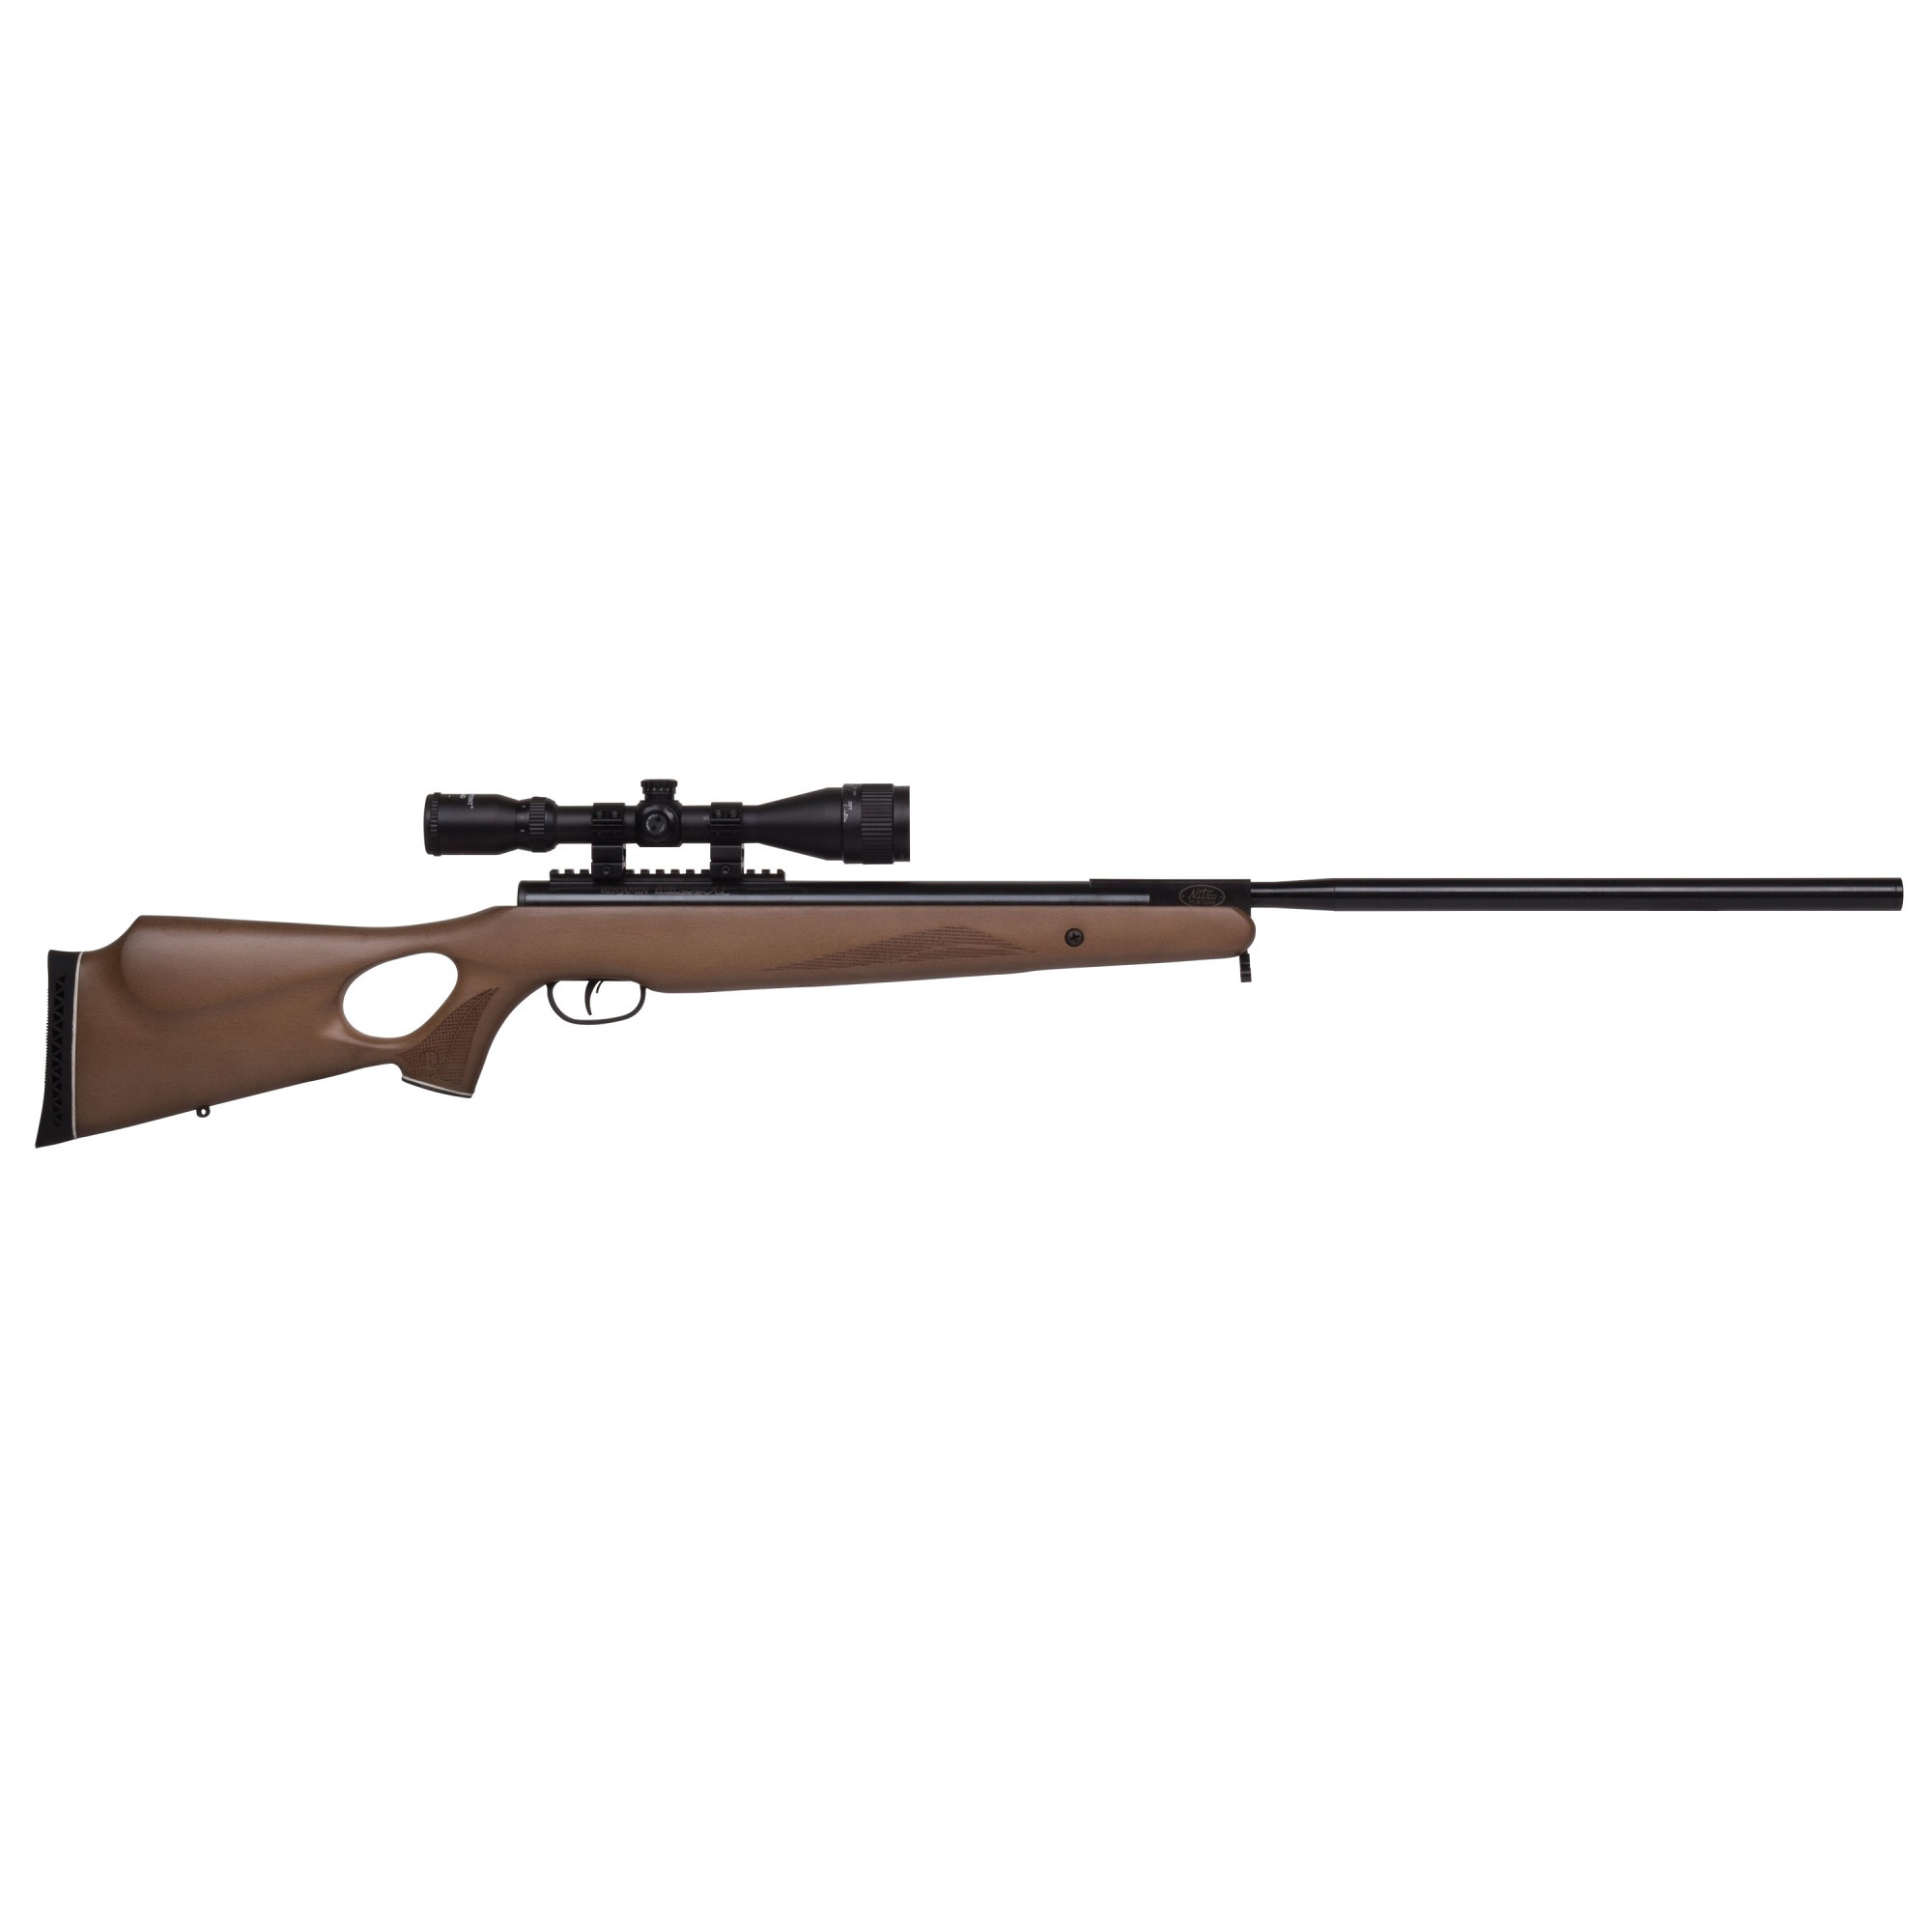 """The XL1500 features a handsome"""" checkered"""" hardwood stock. With its daunting 25 ft-lbs of muzzle energy"""" and shot velocities of up to 1500 fps"""" small game - it's game over. Benjamin Nitro Piston powered break barrels produce 70% less noise than spring powered airguns"""" and with a smooth cocking effort"""" less recoil and less noise"""" a successful day of hunting is within reach. One simple cocking motion and your follow-up shots are fast"""" quiet and easy. Each Benjamin Trail NP break barrel comes with a 3-9x40 mm CenterPoint precision scope"""" featuring an adjustable objective and range estimating reticle. Trail NP air rifles feature a bull barrel"""" picatinny mounting rail system"""" installed sling mounts and a ventilated rubber recoil pad."""